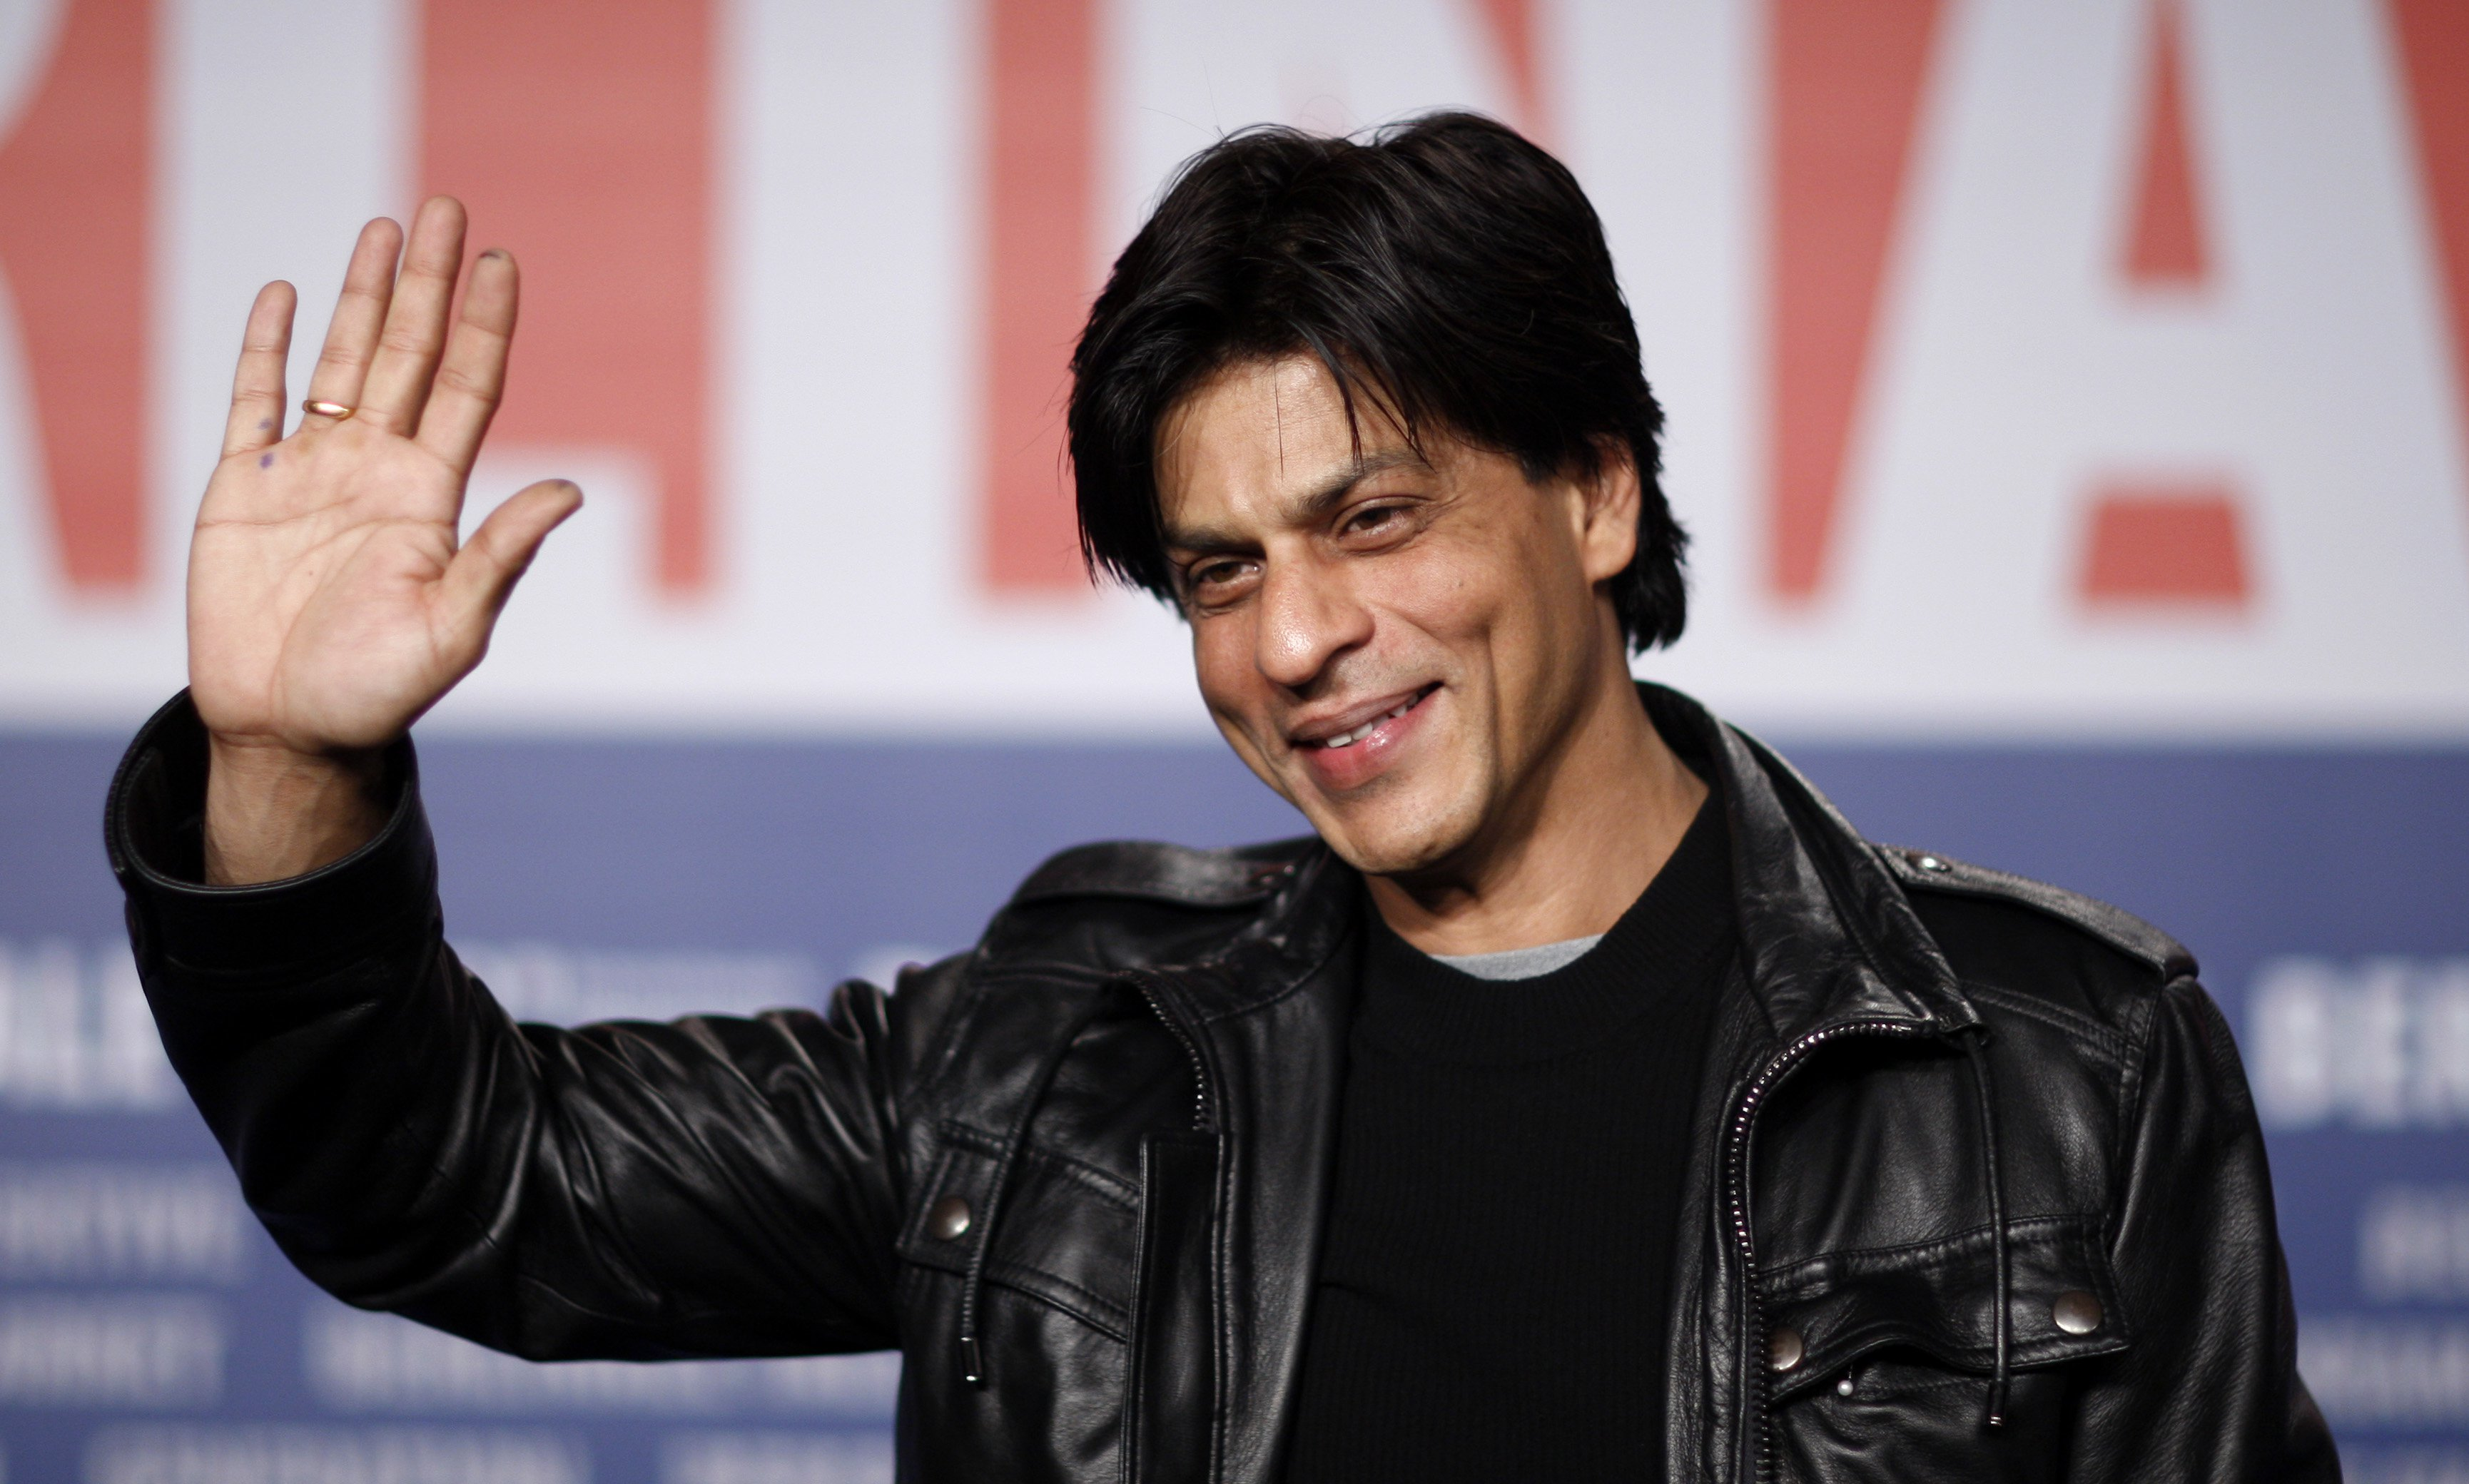 indian-actor-shah-rukh-khan-attends-a-press-confernce-to-present-his-film-at-berlinale-international-film-festival-in-berlin-2-2